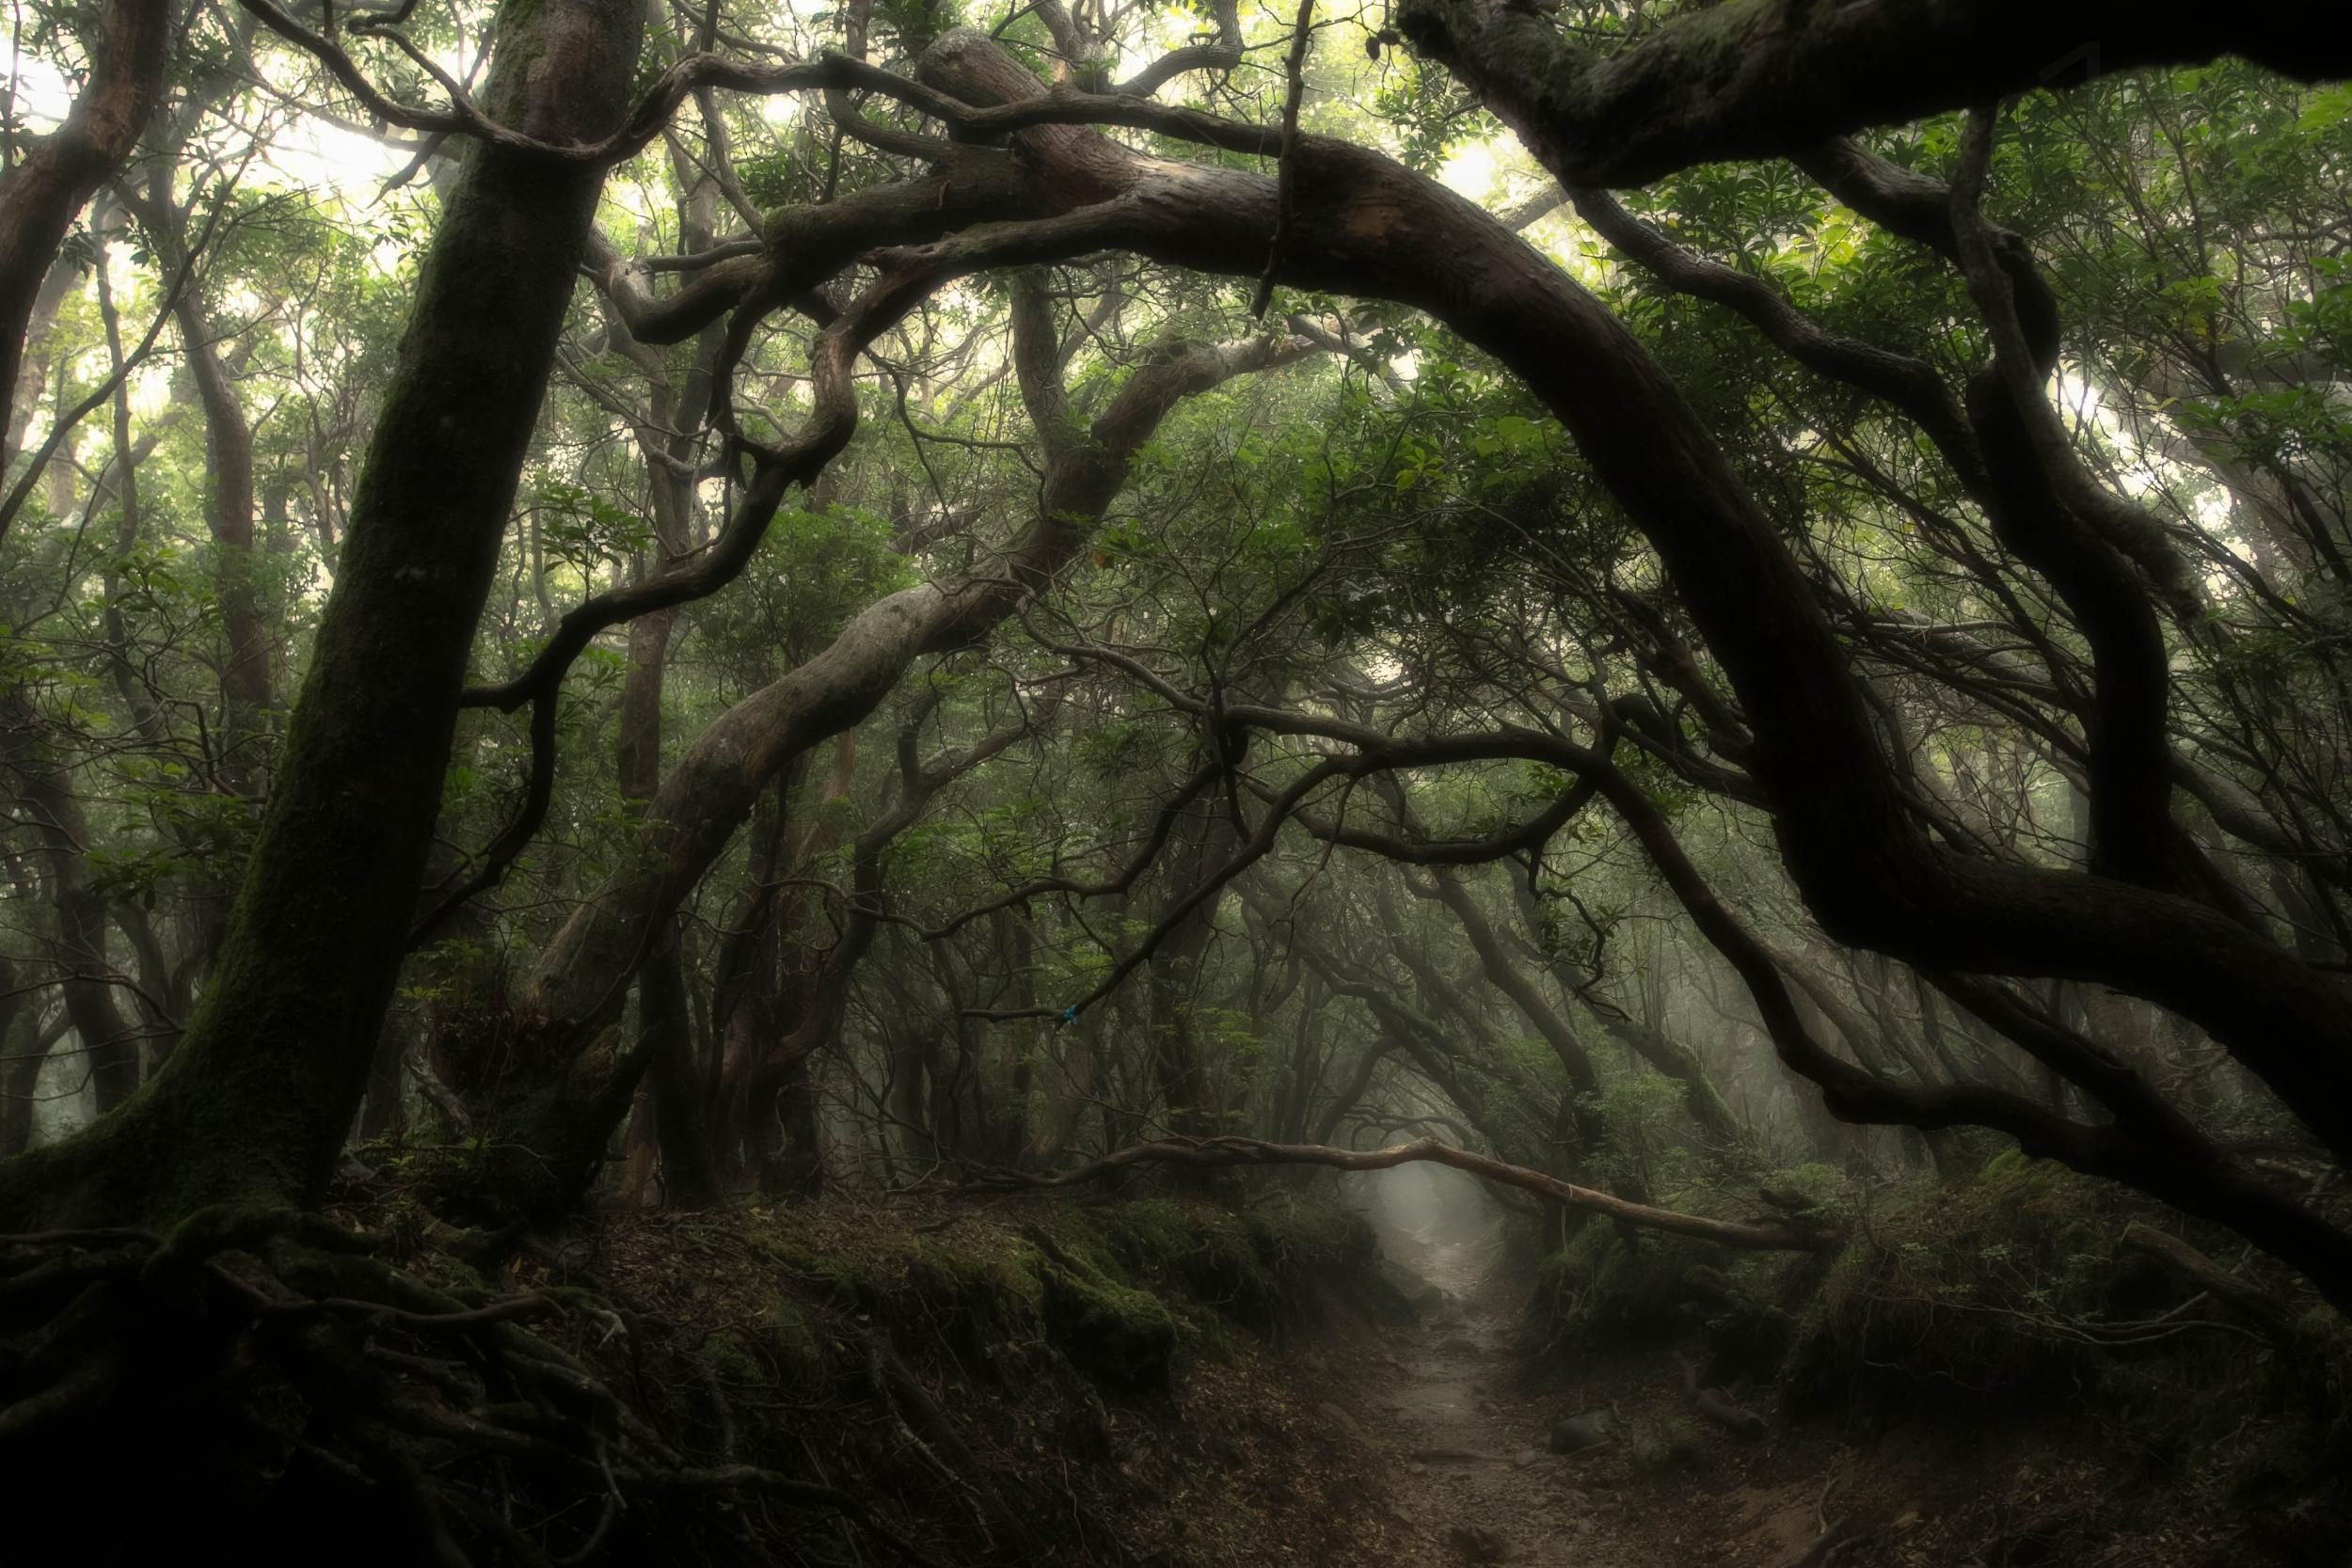 I love the enchanted, entangled nature of these trees ...